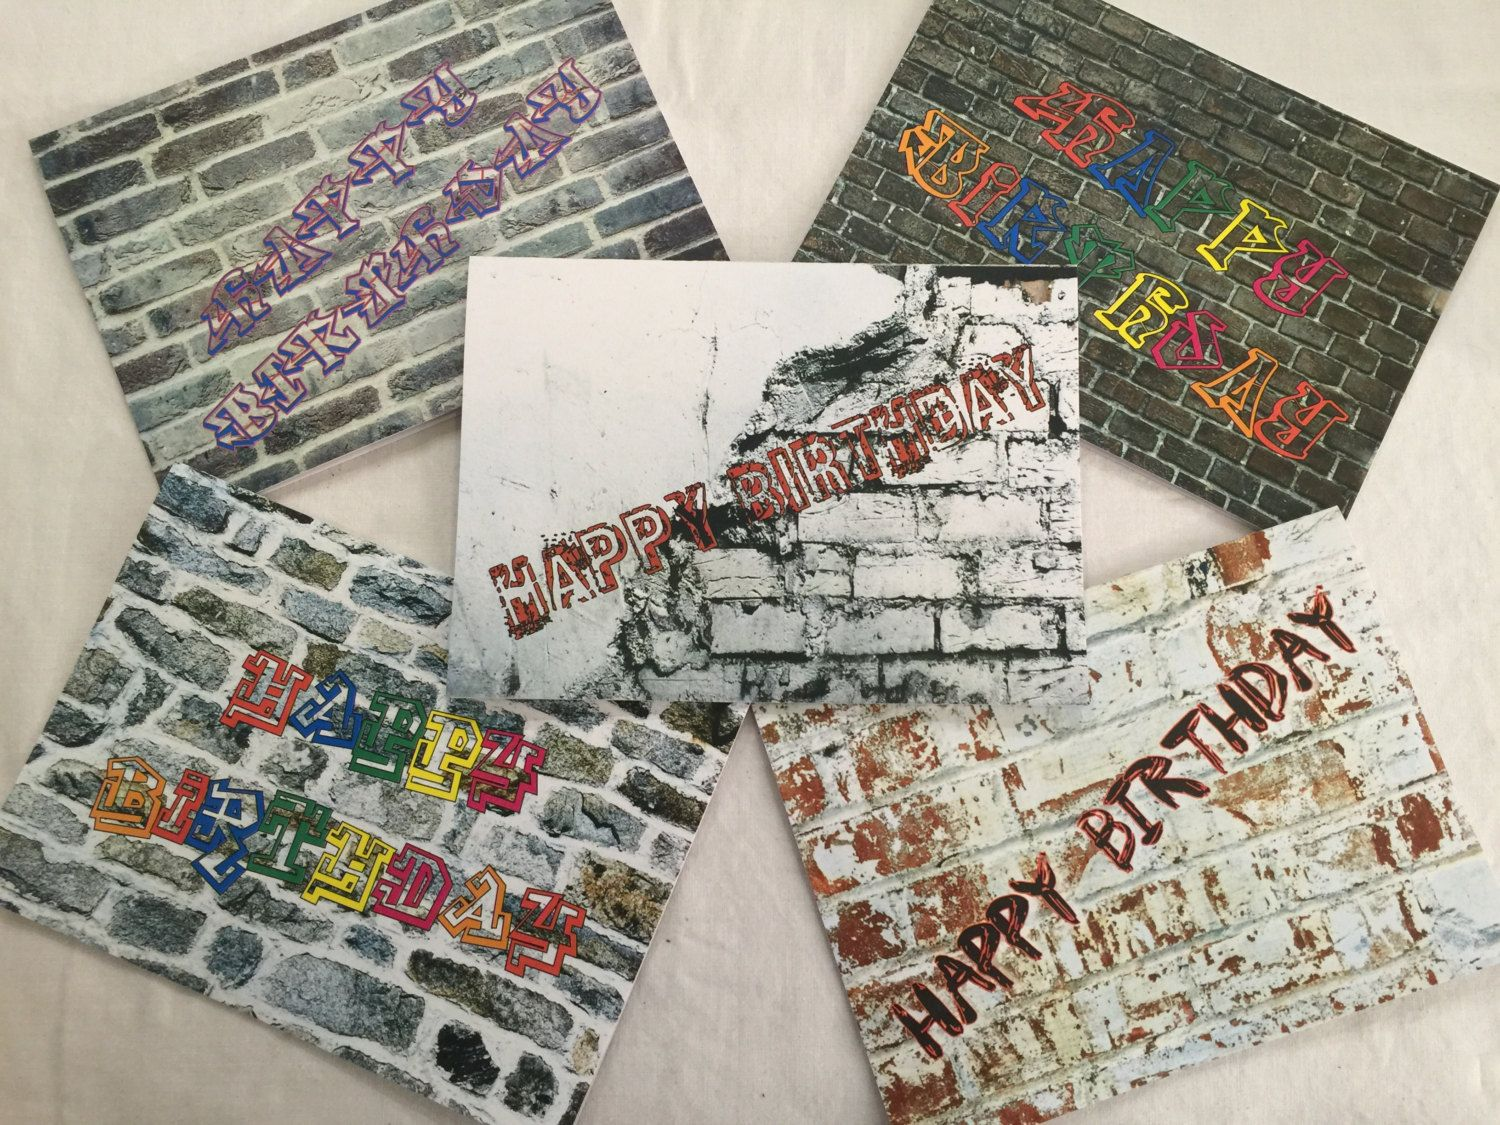 Graffiti Birthday Cards Variety Pack 5 Cards With 5 Envelopes By